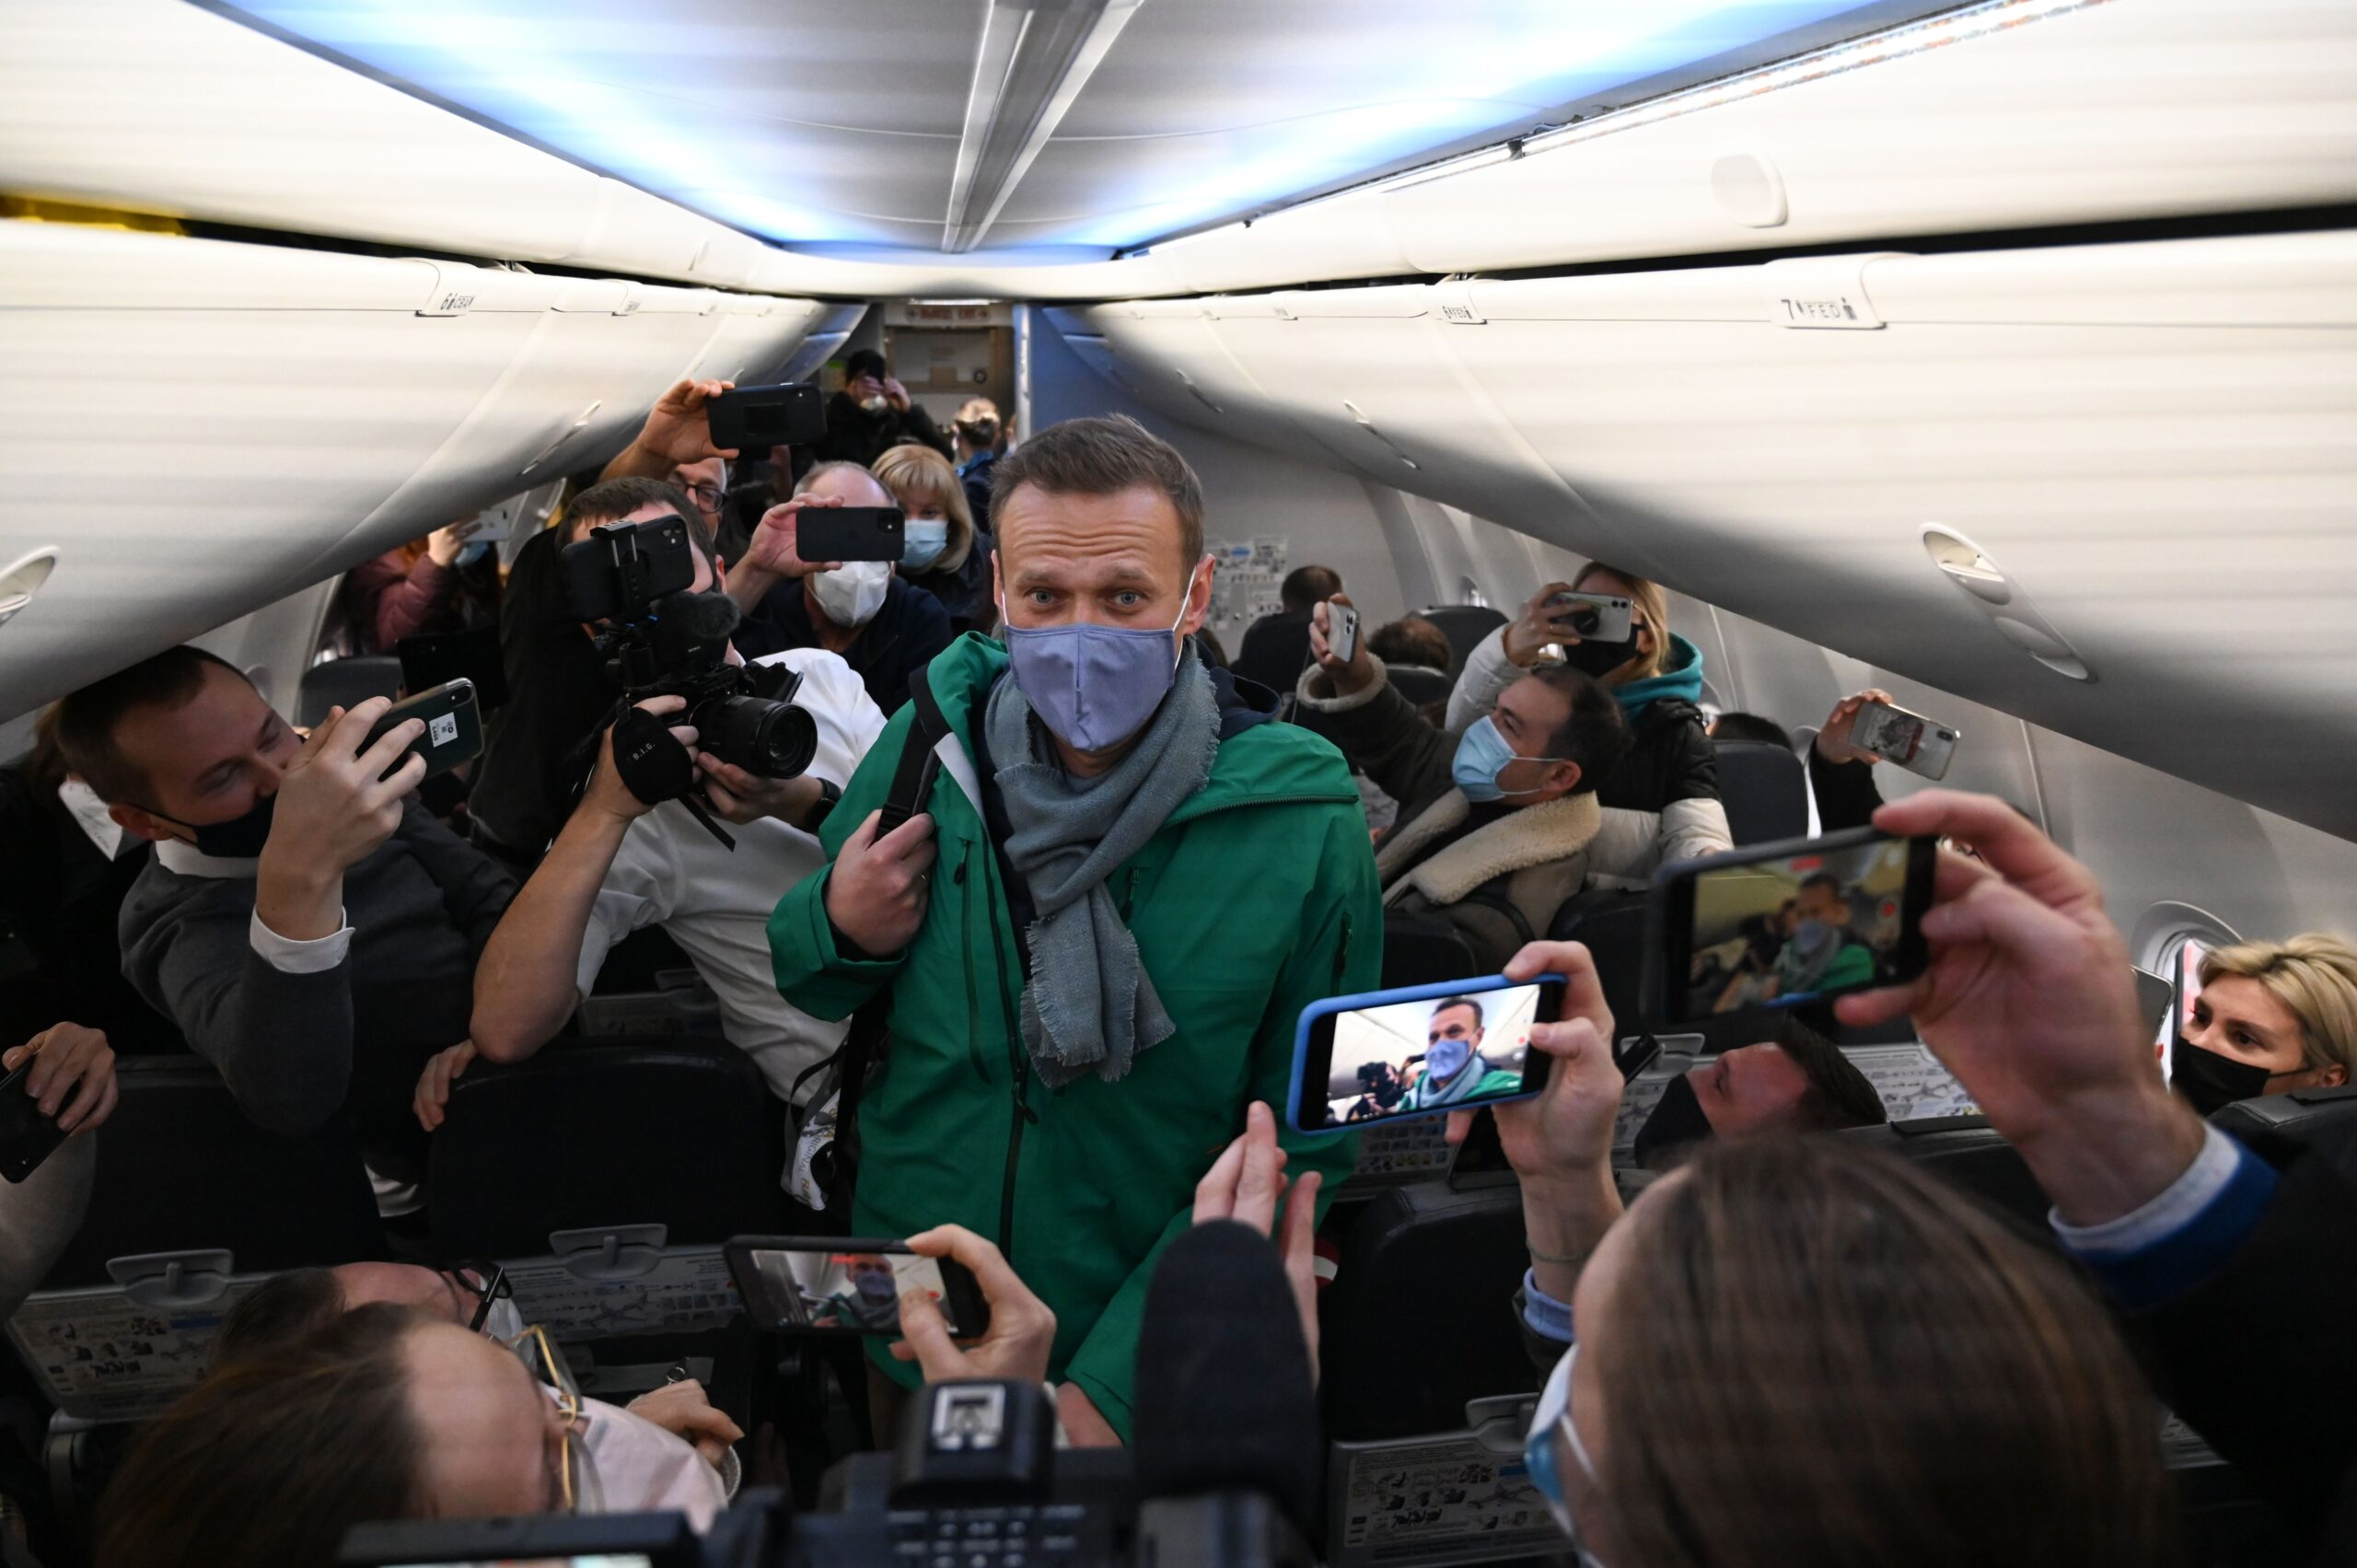 Russia: Transfer of Aleksei Navalny is punishment in the guise of medical treatment